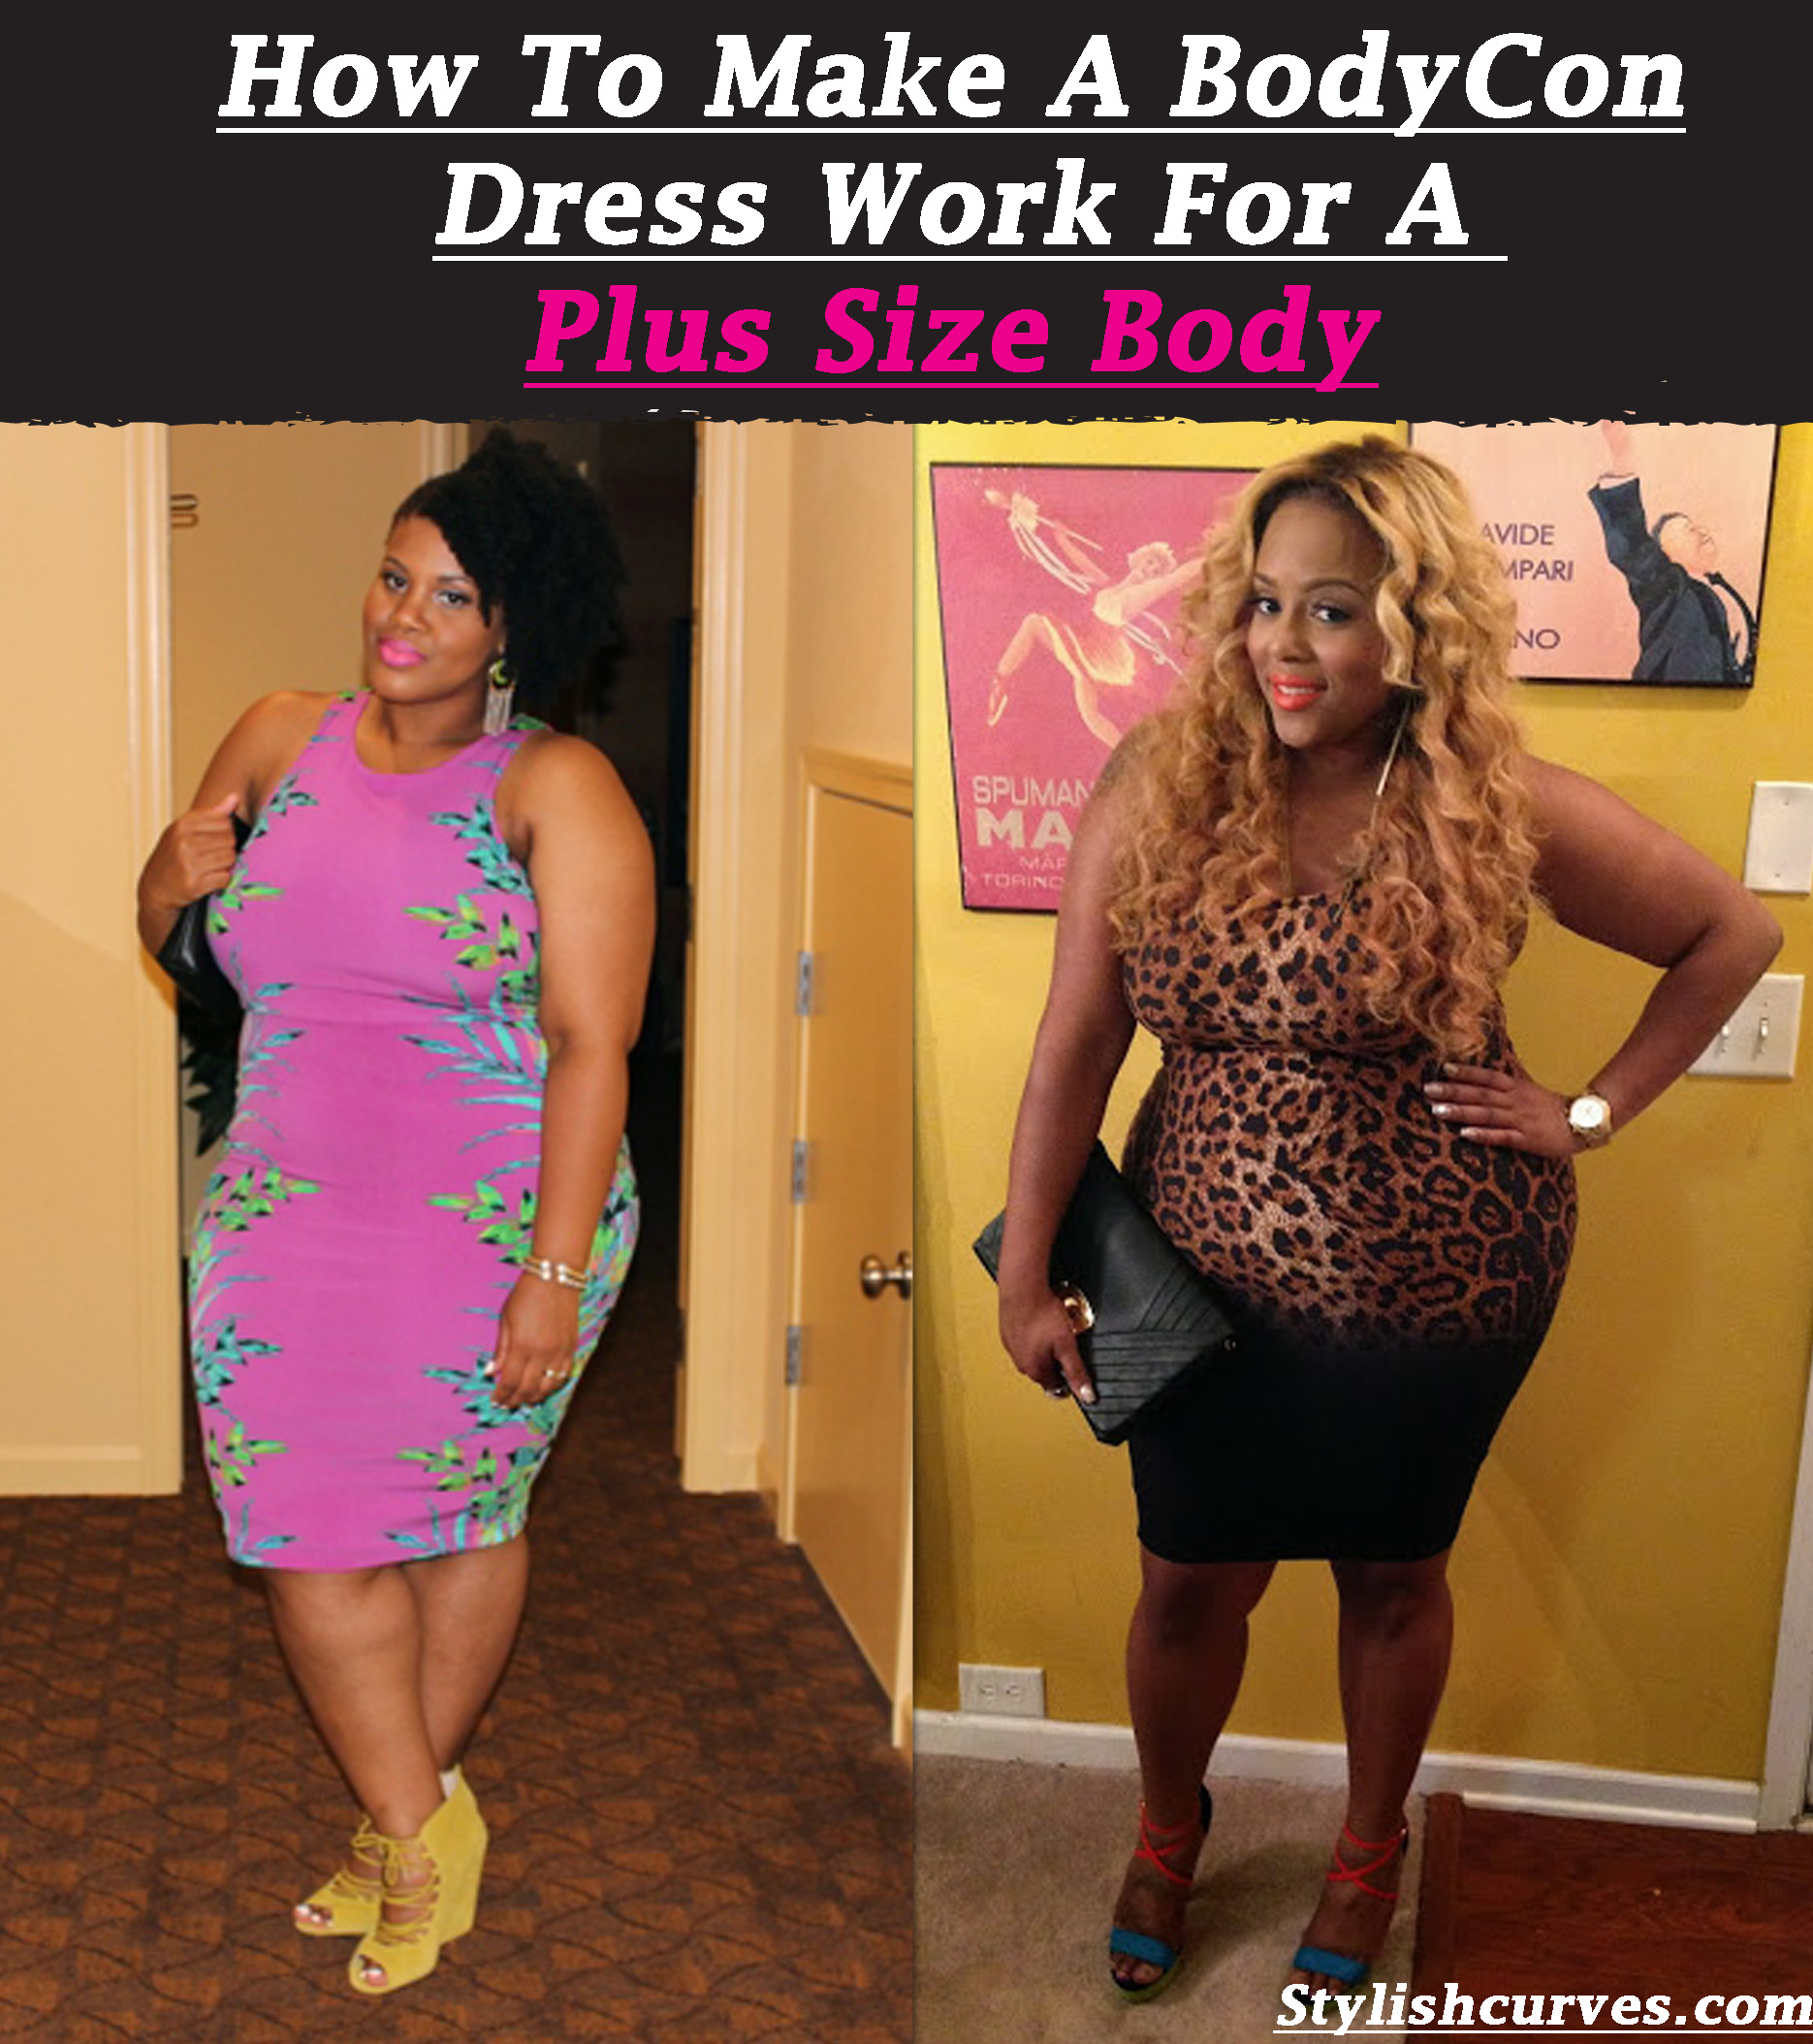 HOW TO MAKE A BODY CON DRESS WORK FOR YOUR PLUS SIZE BODY ...